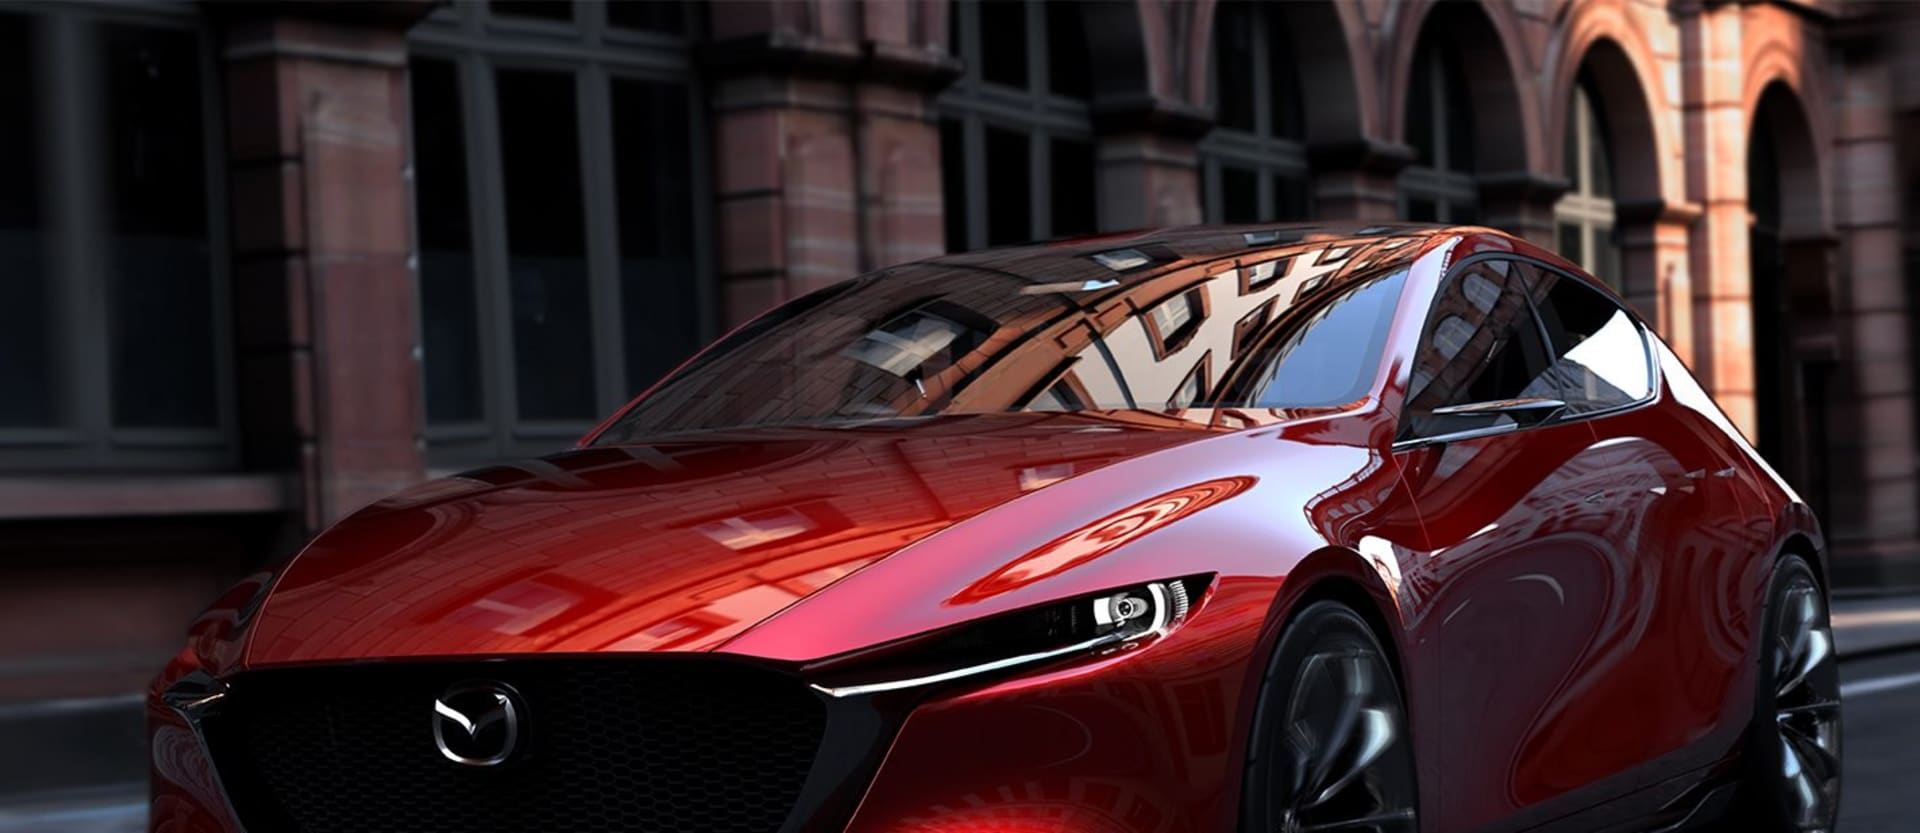 2017 Mazda reveals pair of concepts previewing future design